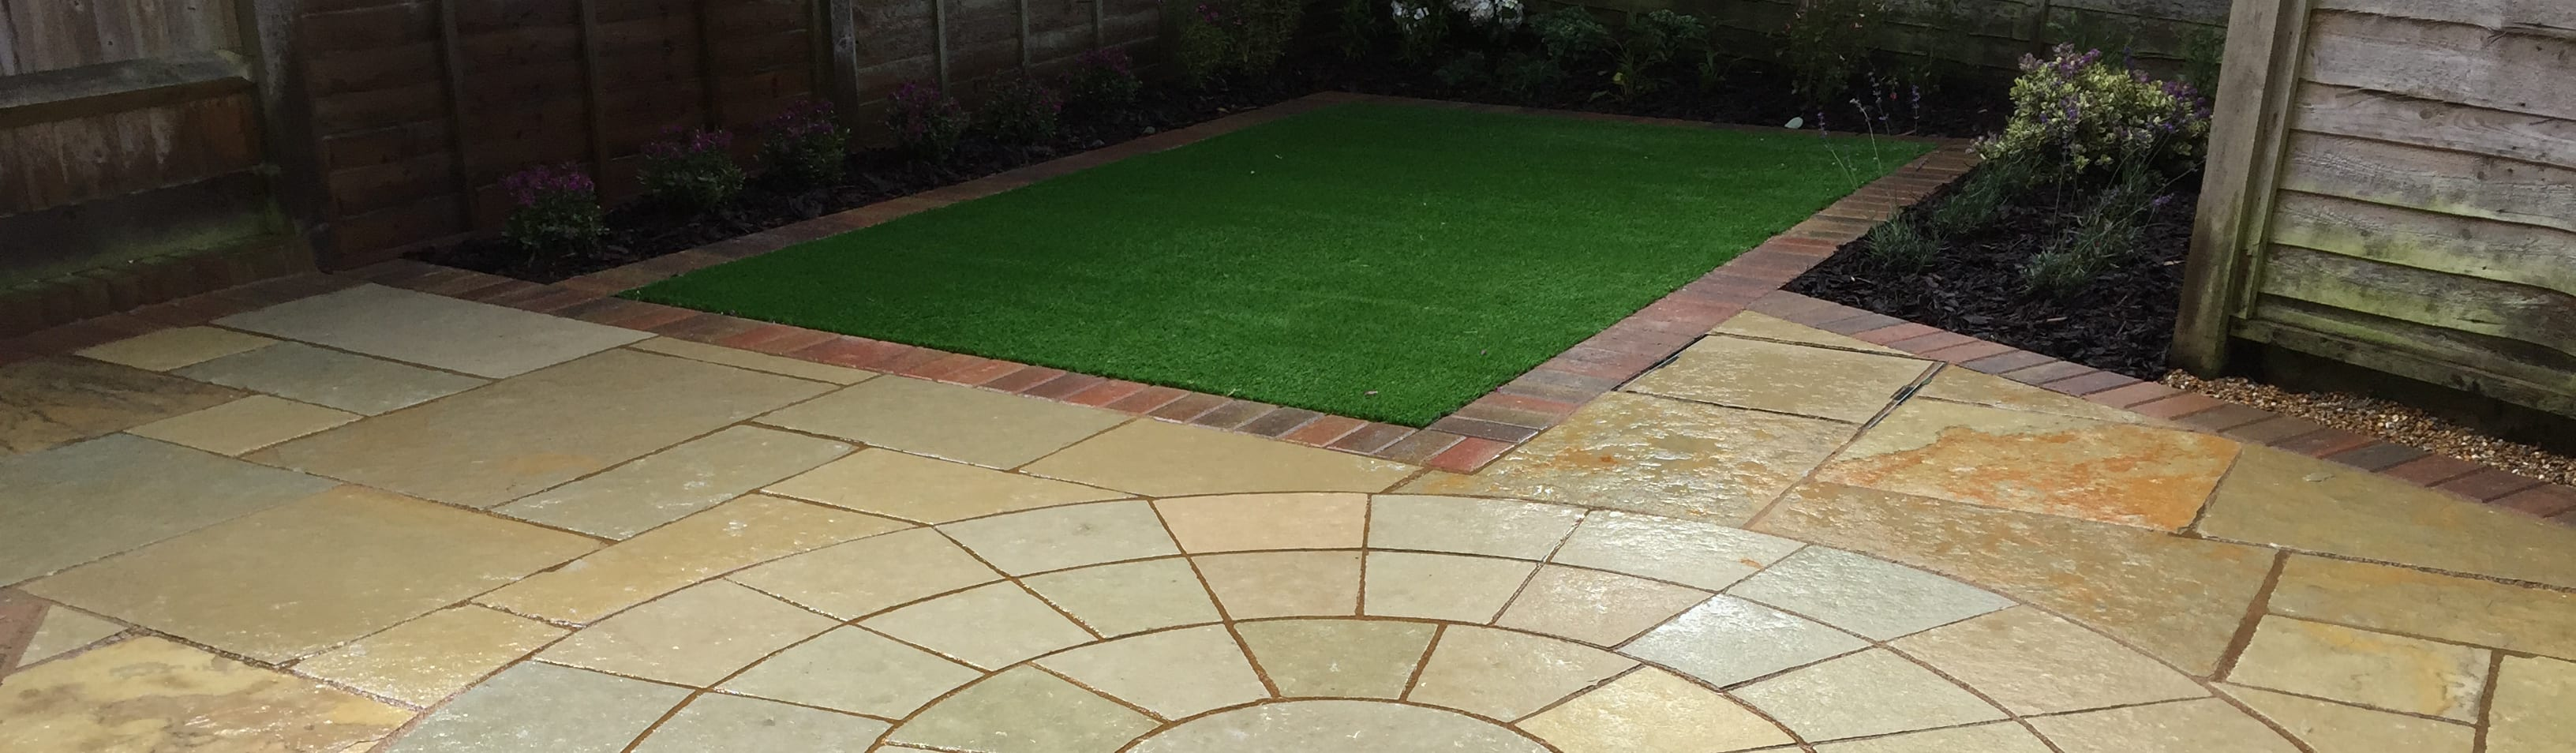 TDS Paving and Landscaping